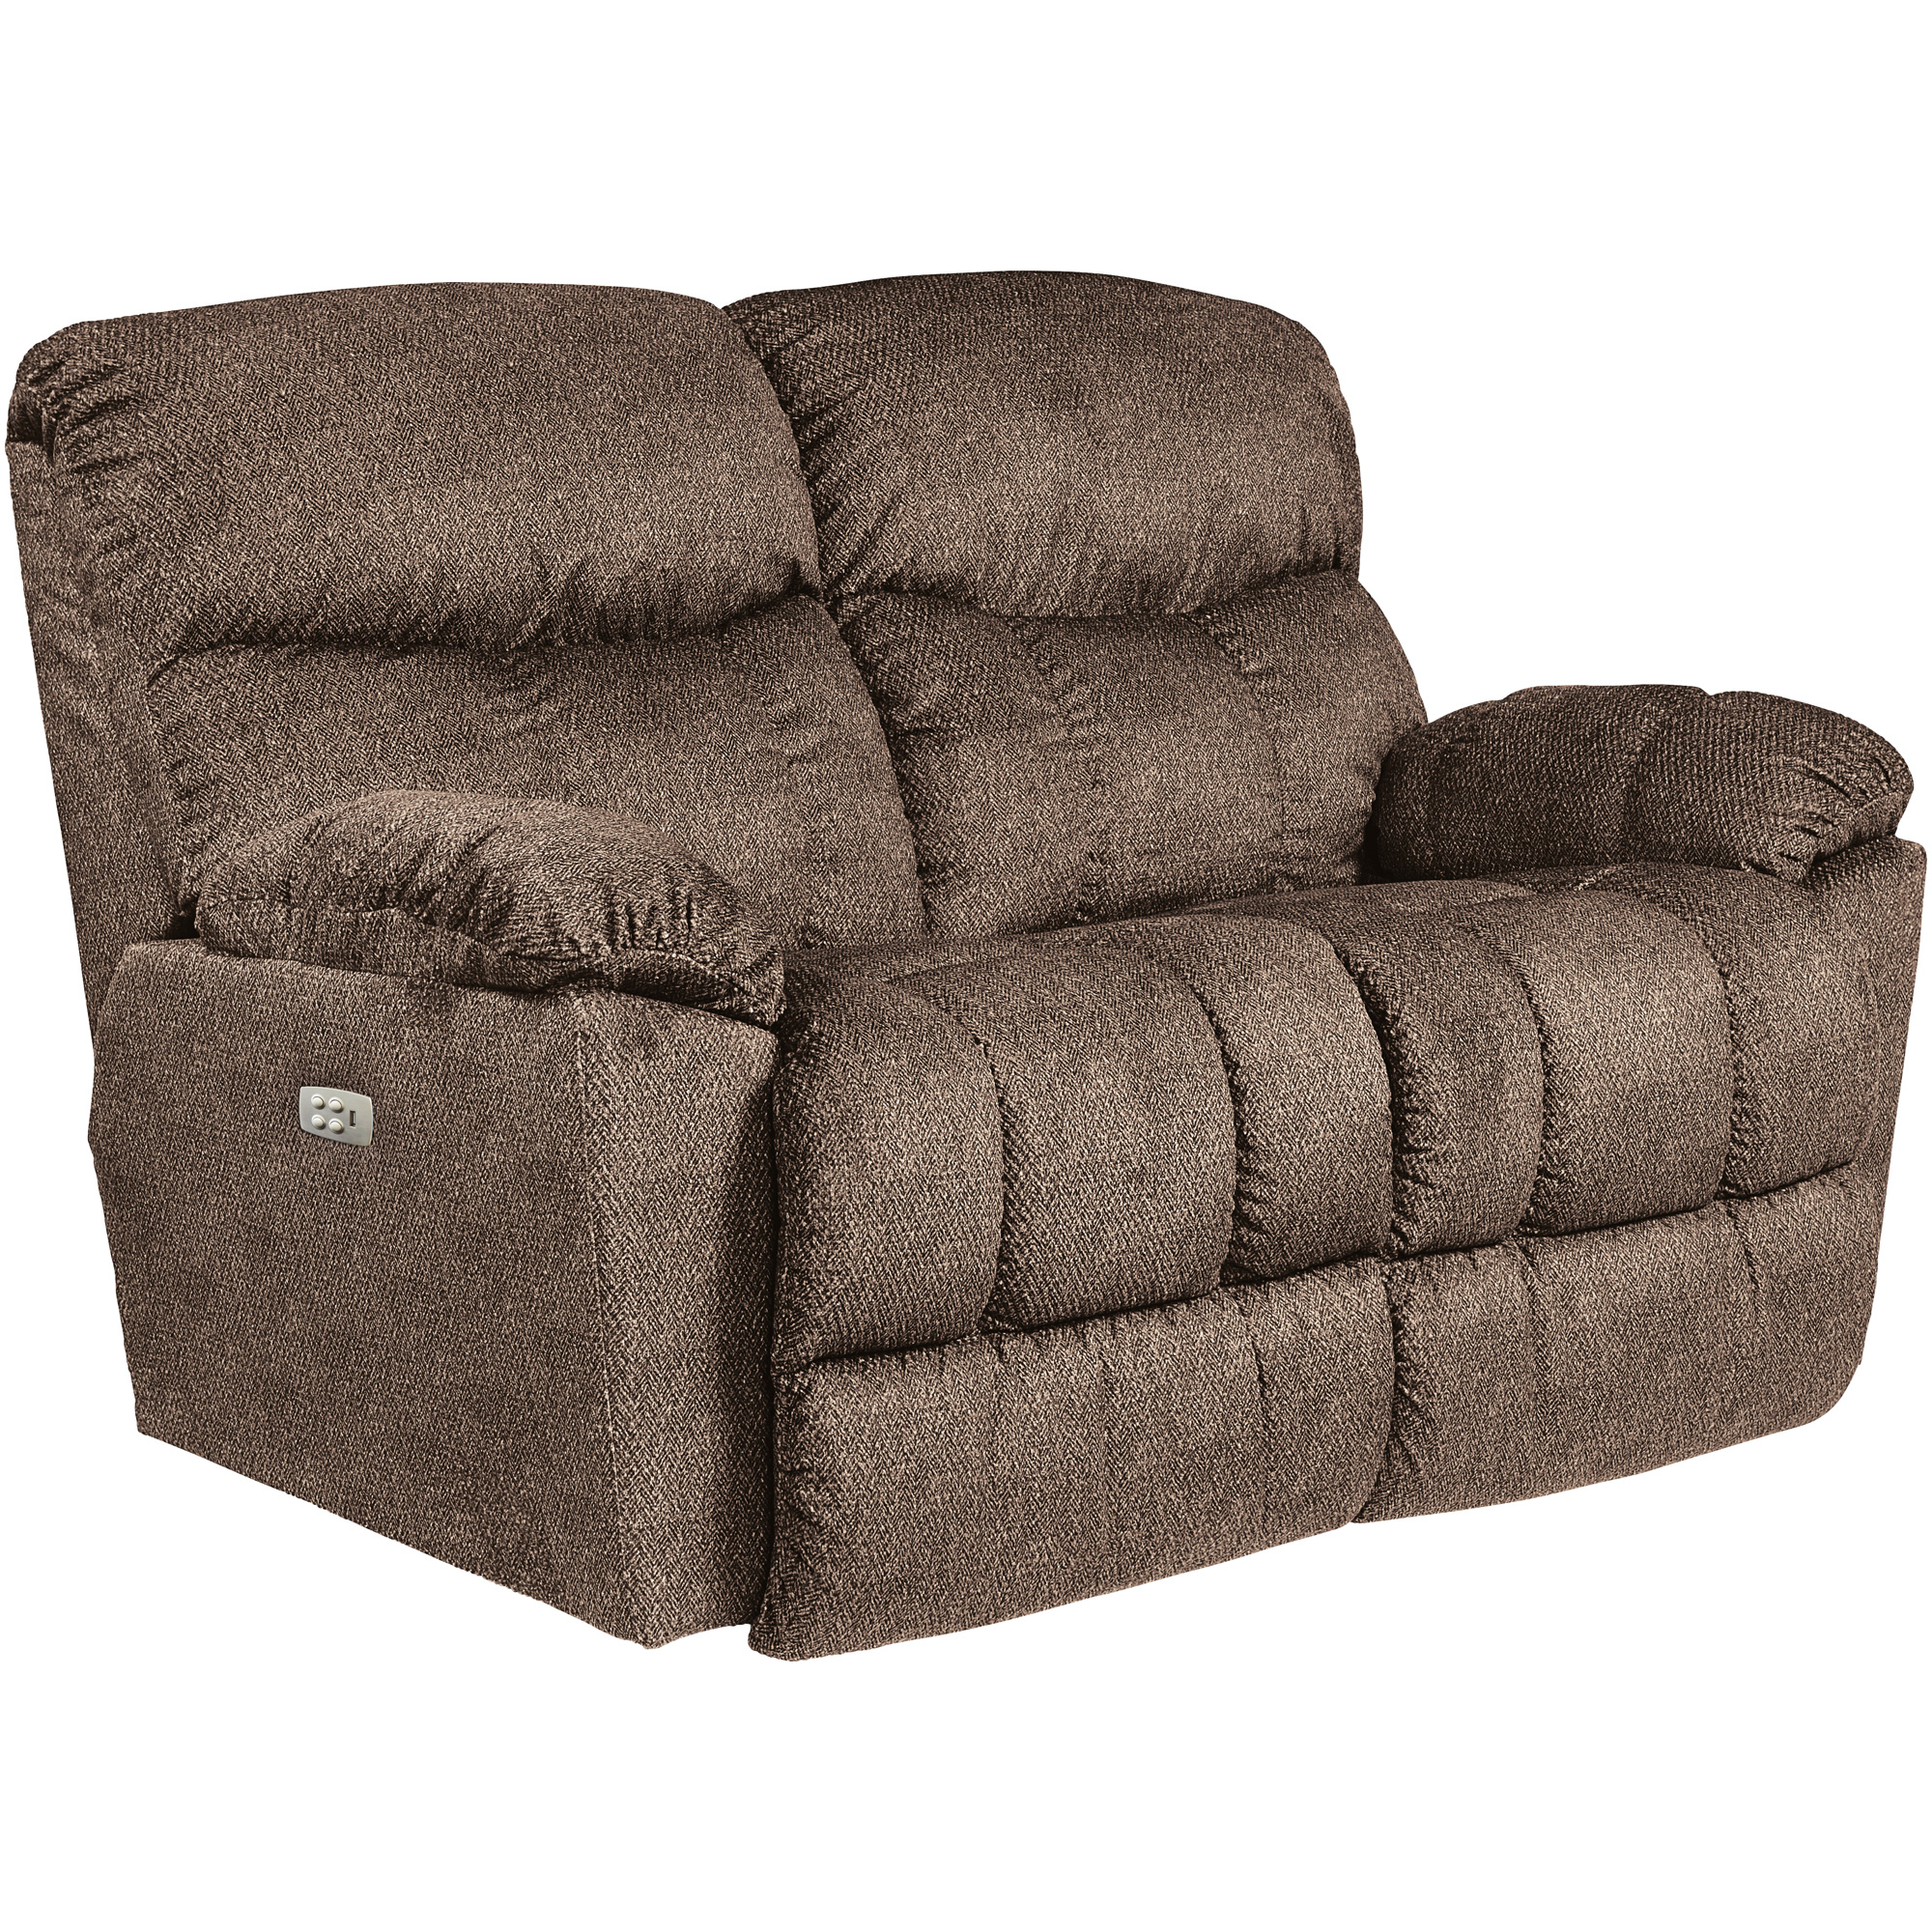 La-Z-Boy | Morrison Cappuccino Power Plus Reclining Loveseat Sofa